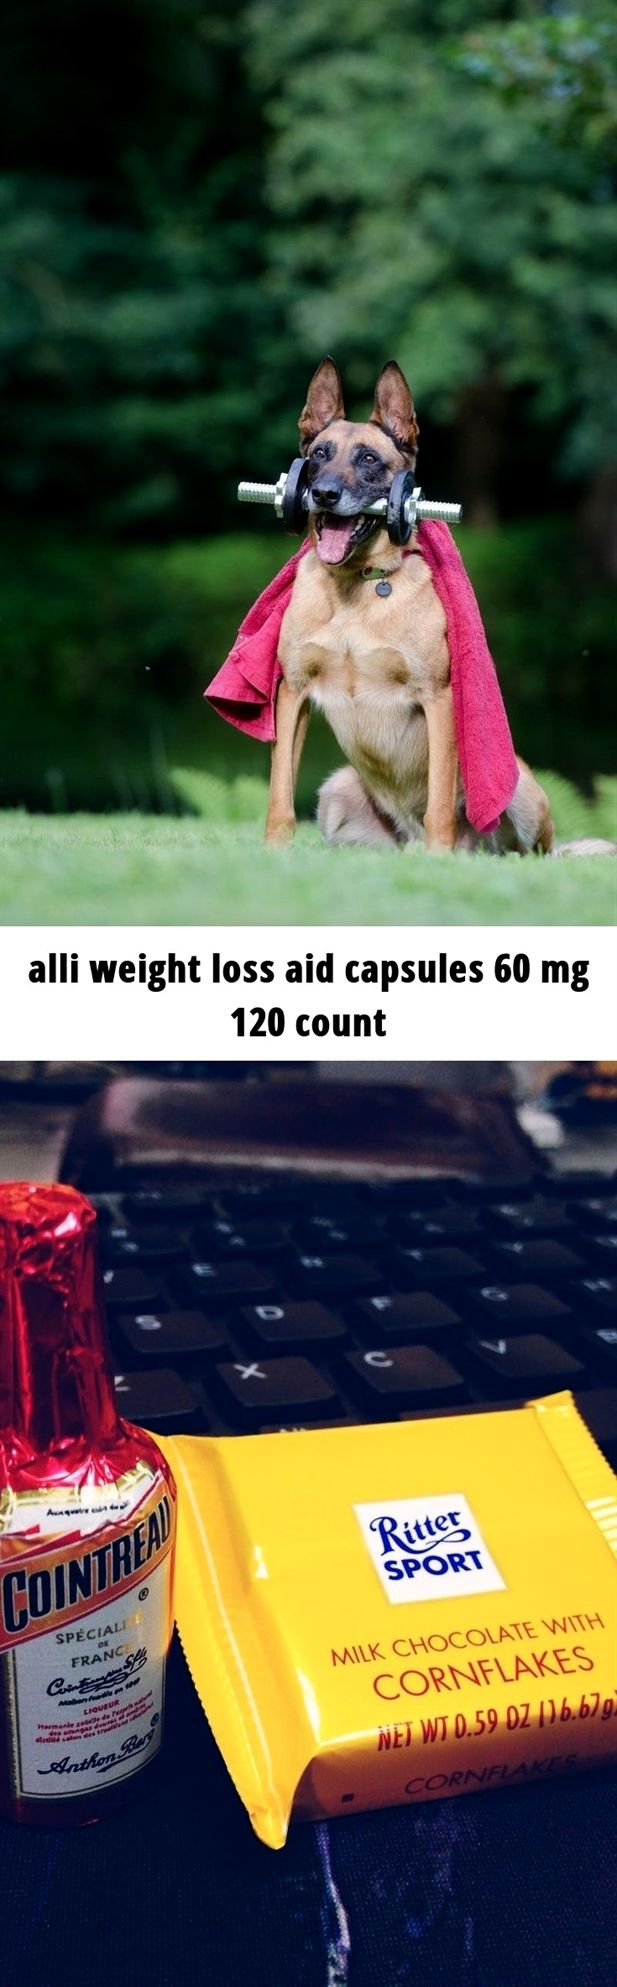 alli #weight loss aid capsules 60 mg 120